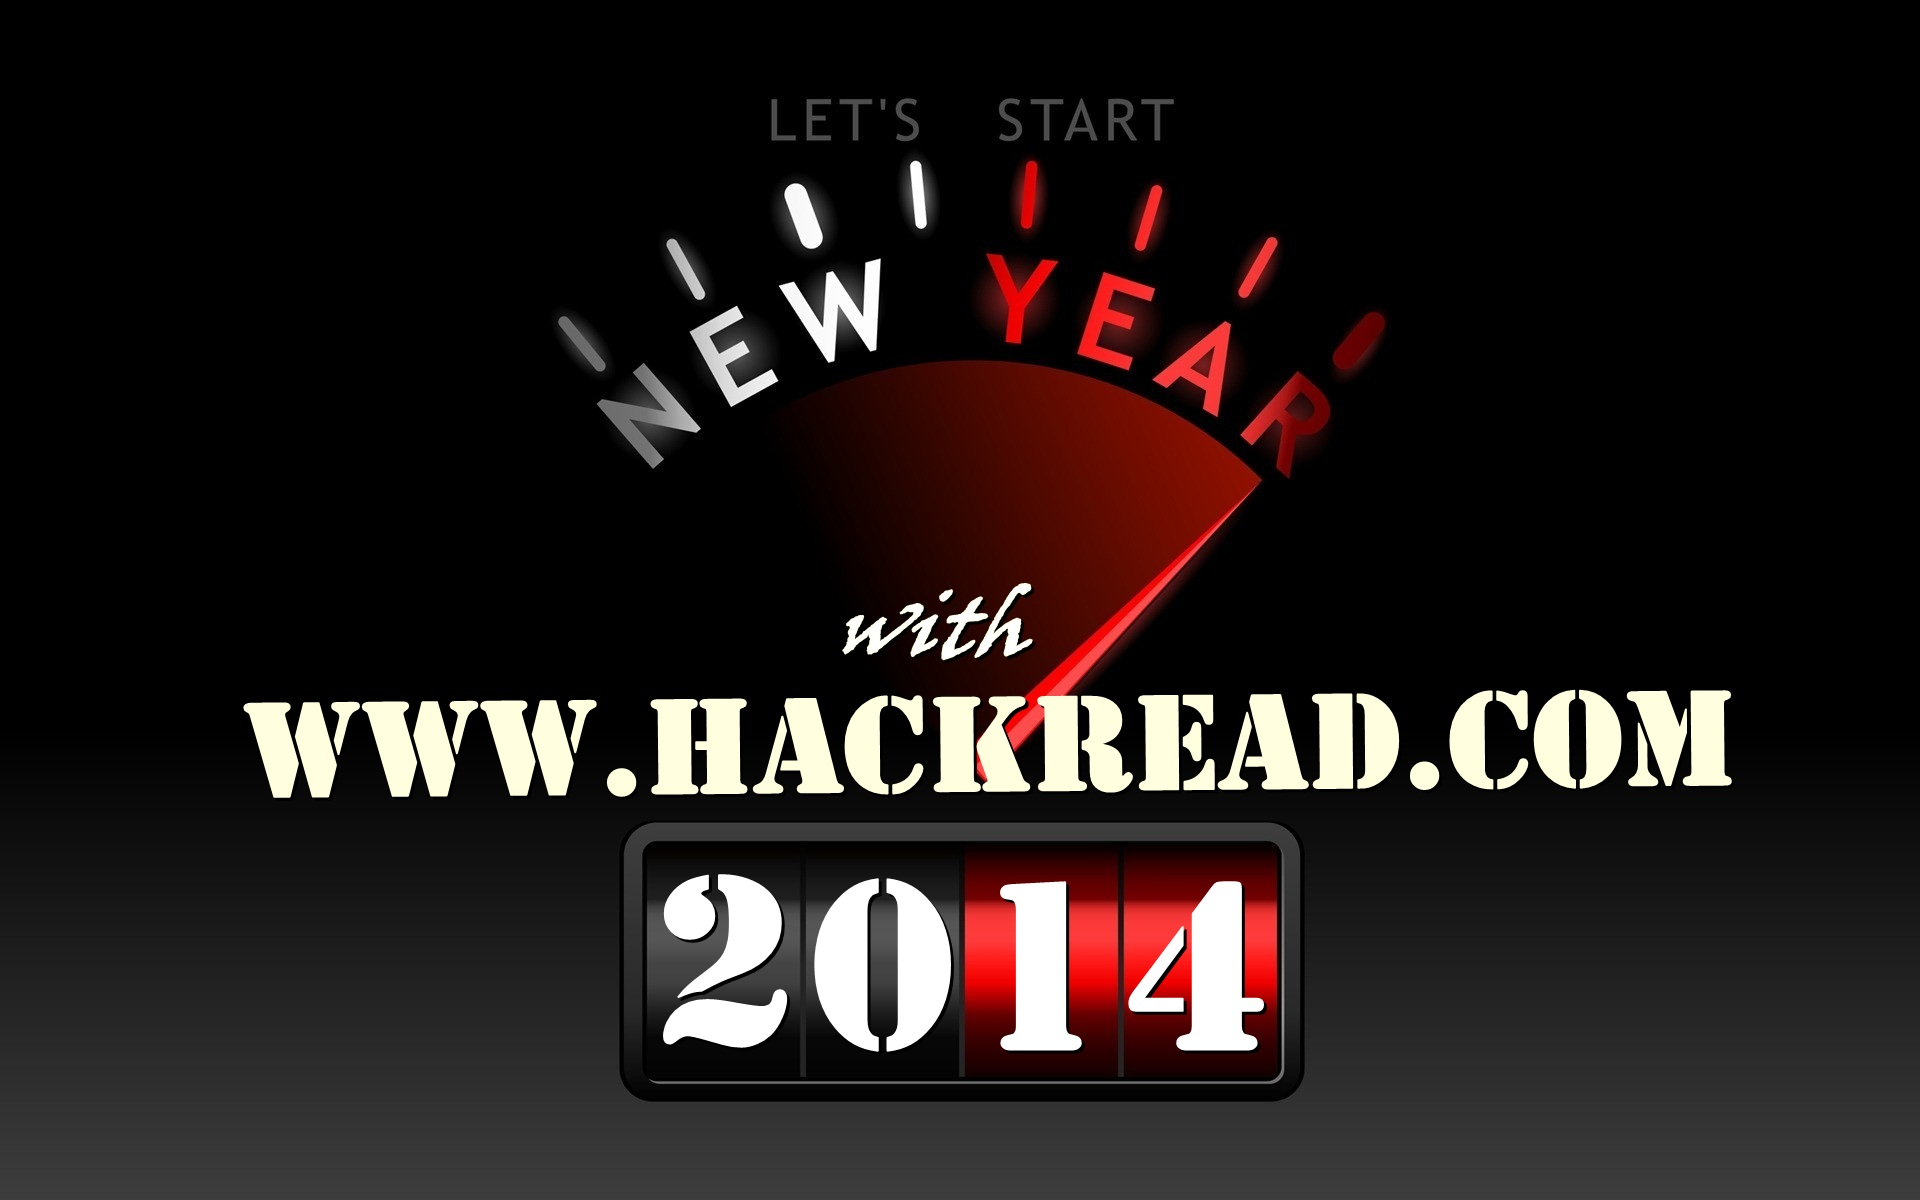 happy-new-year-2014-and-seasons-greetings-from-team-hackread-com